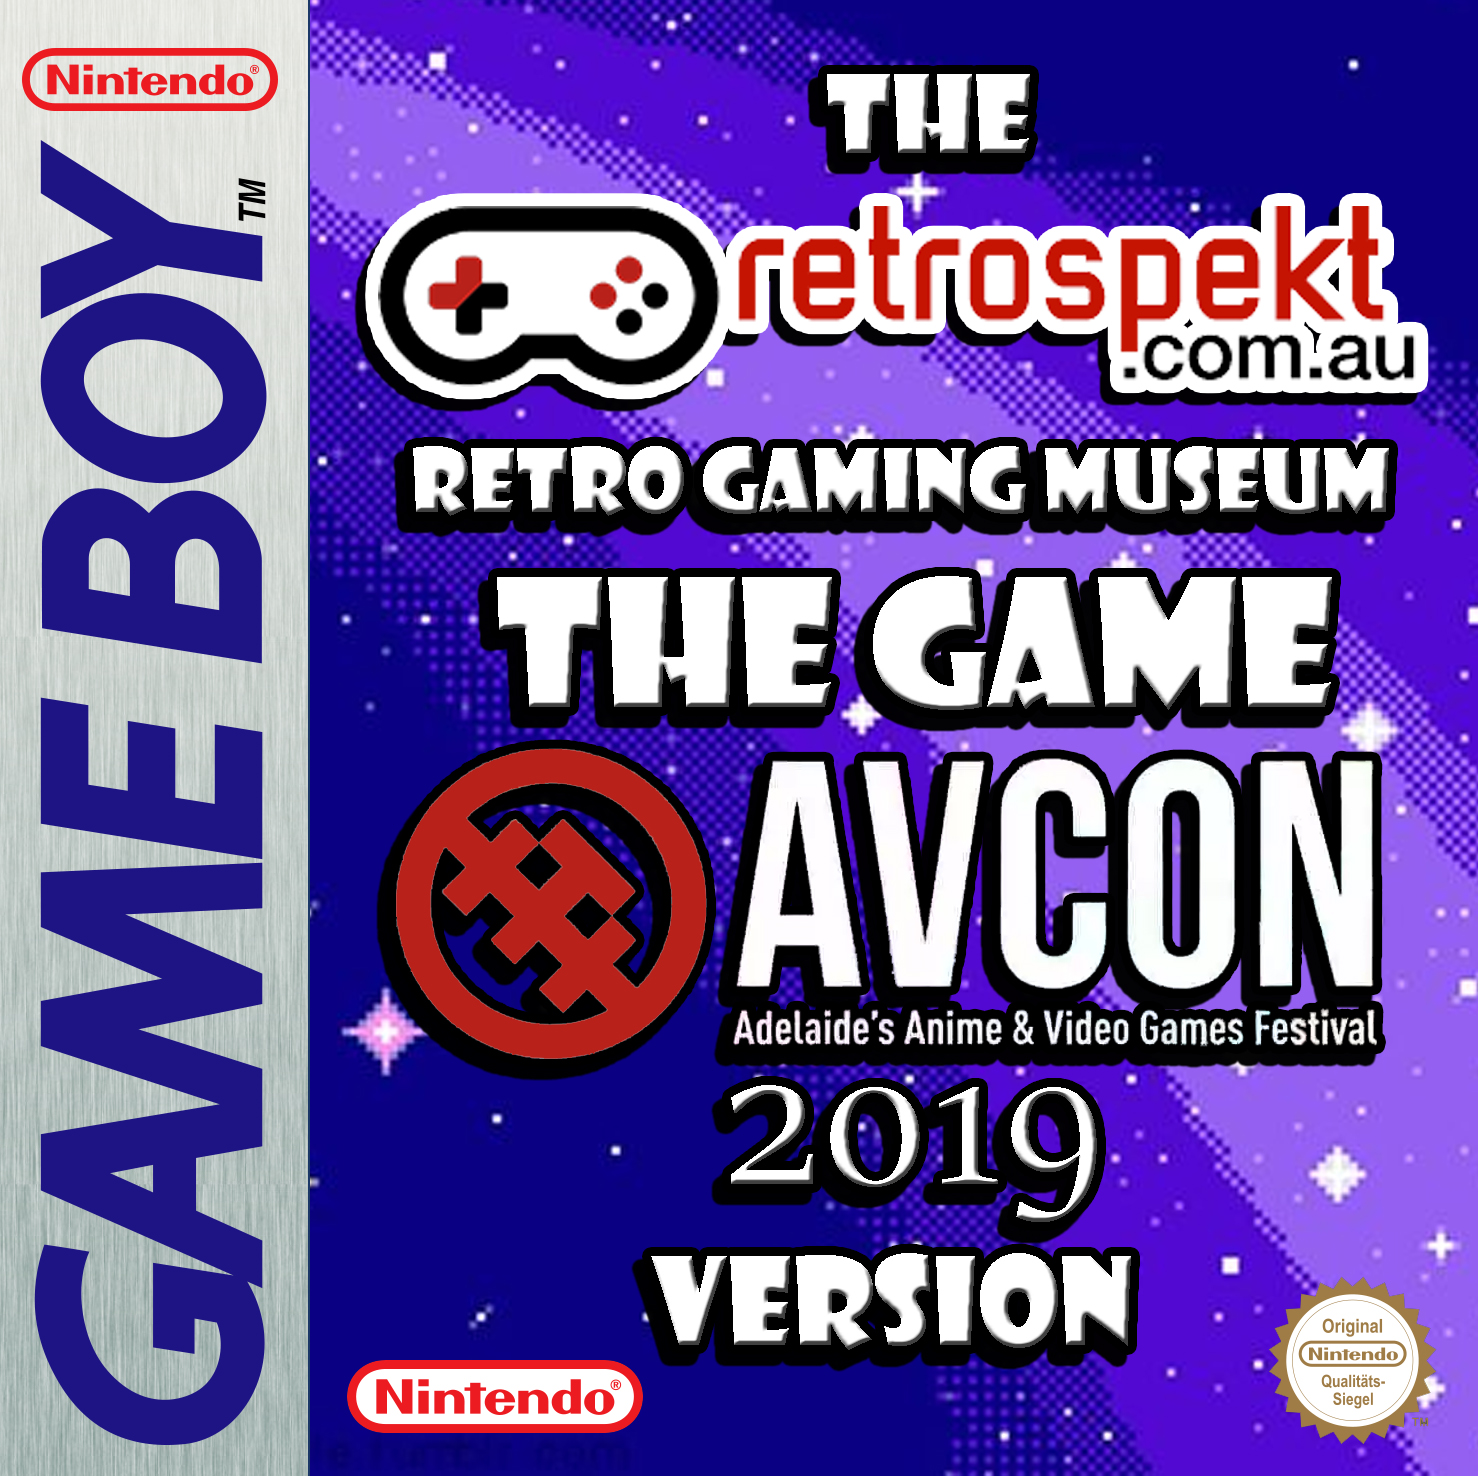 The Playable Retrospekt Game Boy Game!